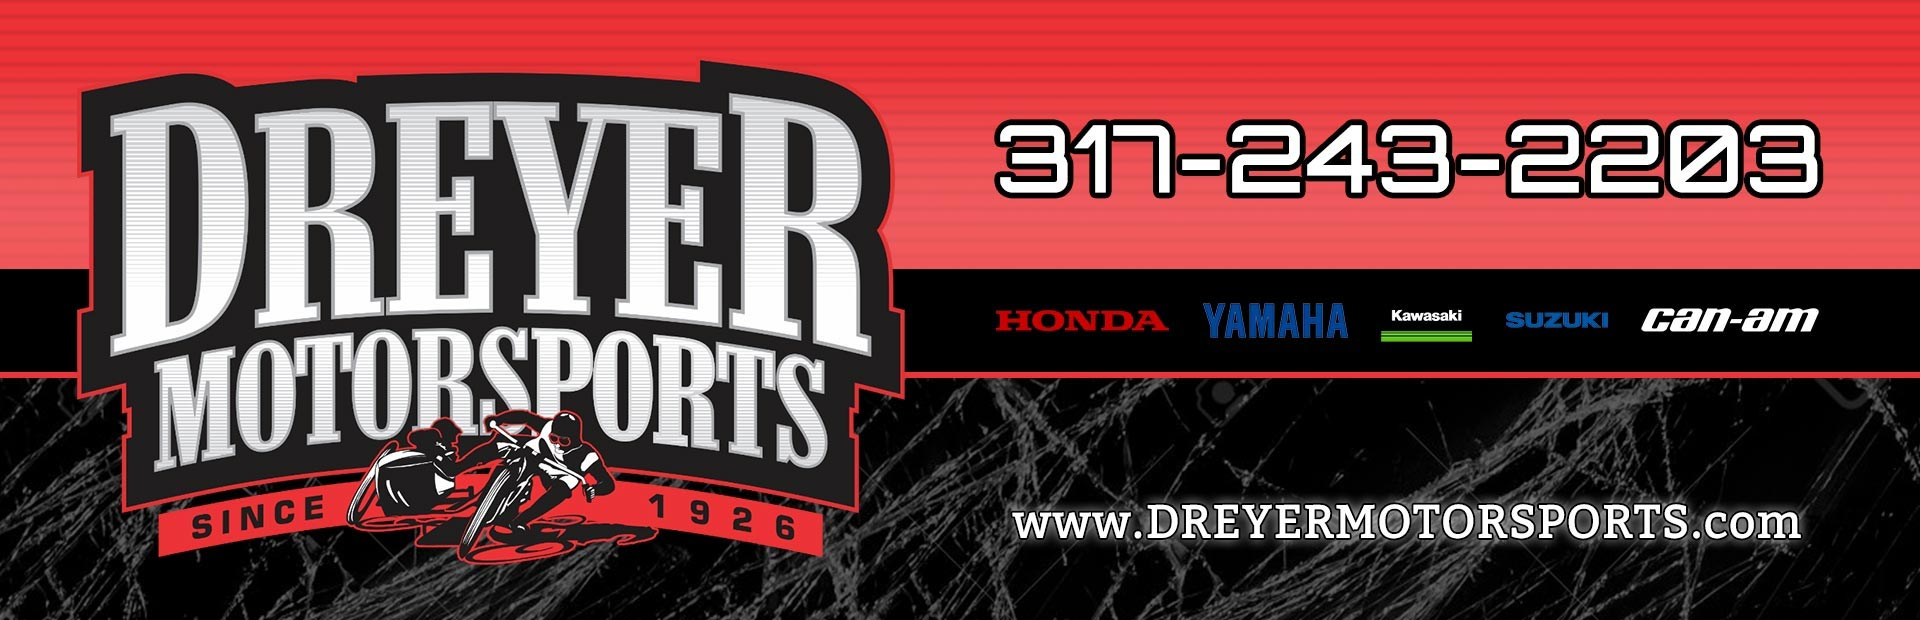 Home Dreyer Motorsports Indianapolis, IN (877) 413-8881